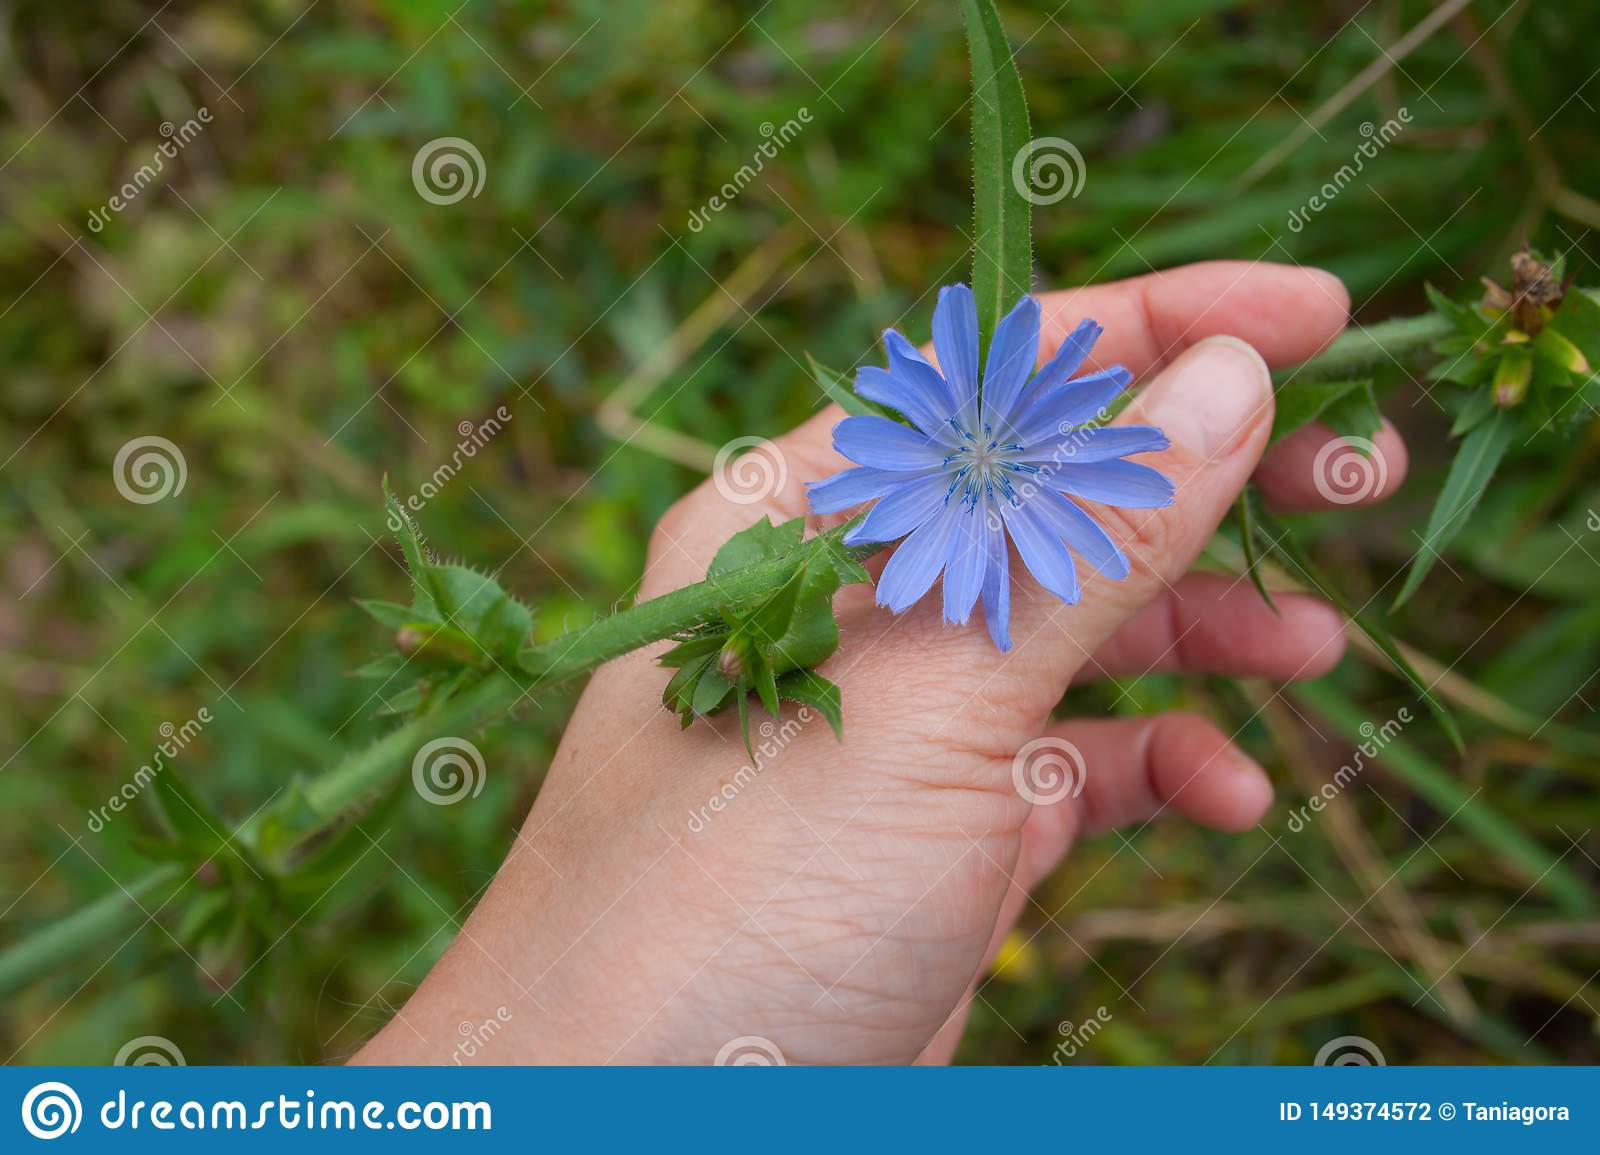 Hand with blue flower on a green background.